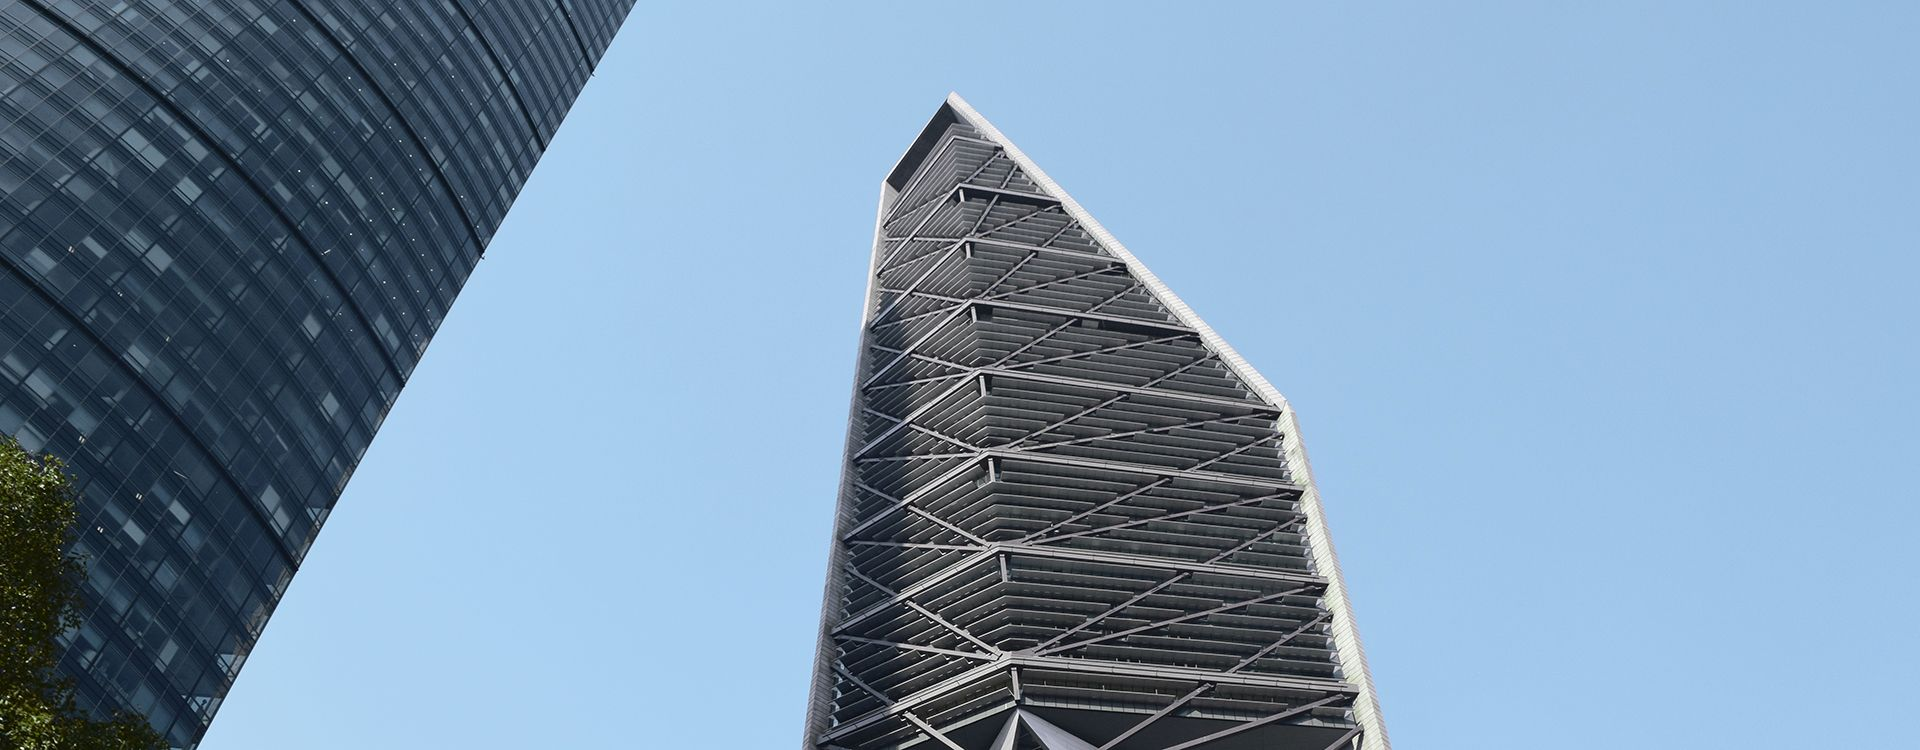 Torre reforma wsp mexico banner